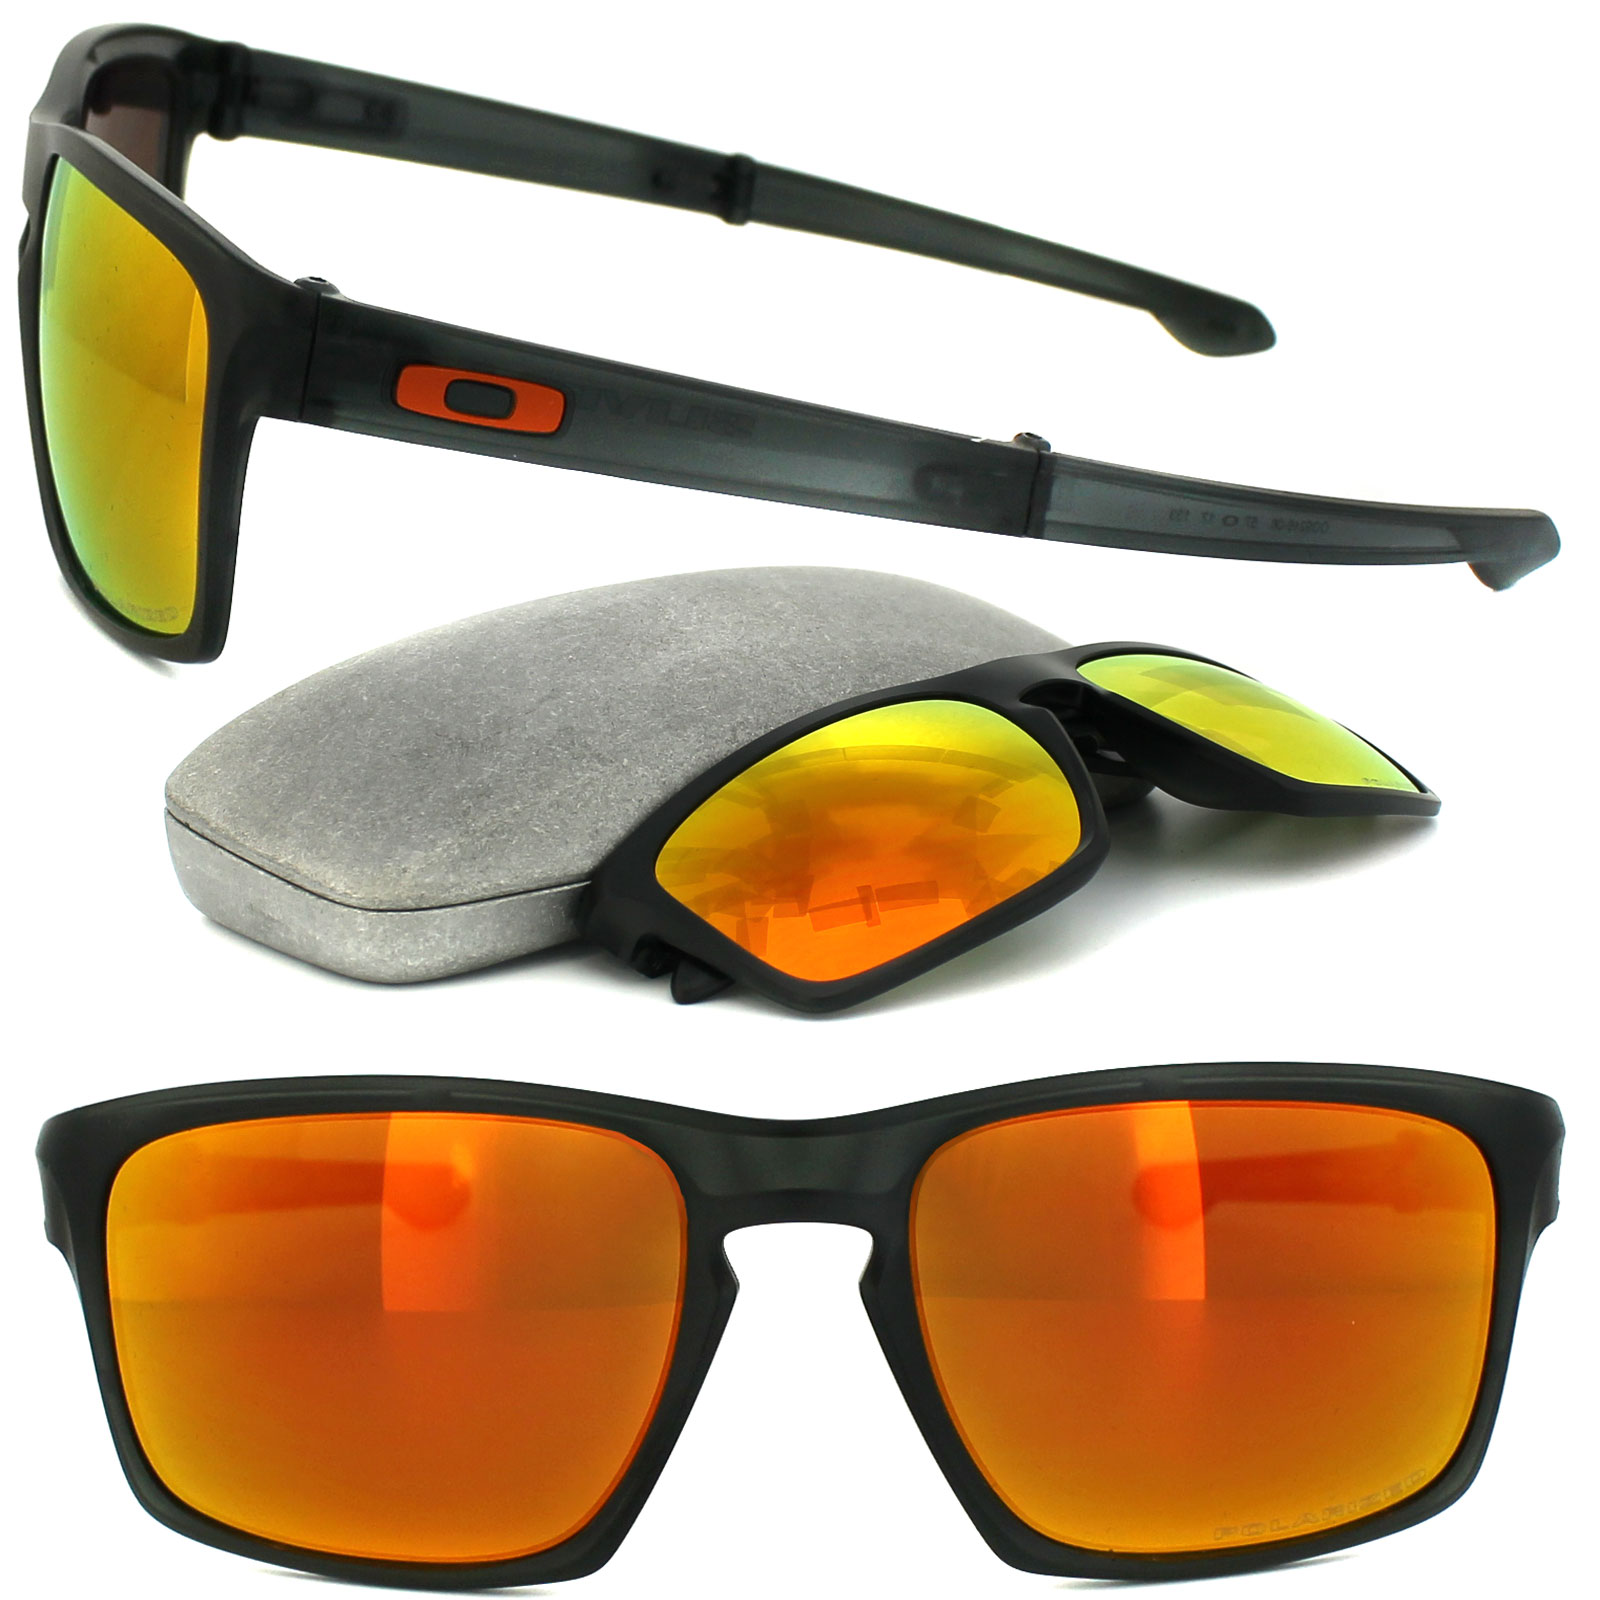 140901d0e1a Sentinel Oakley Sunglasses Sliver F OO9246-06 Grey Ink Fire Iridium  Polarized